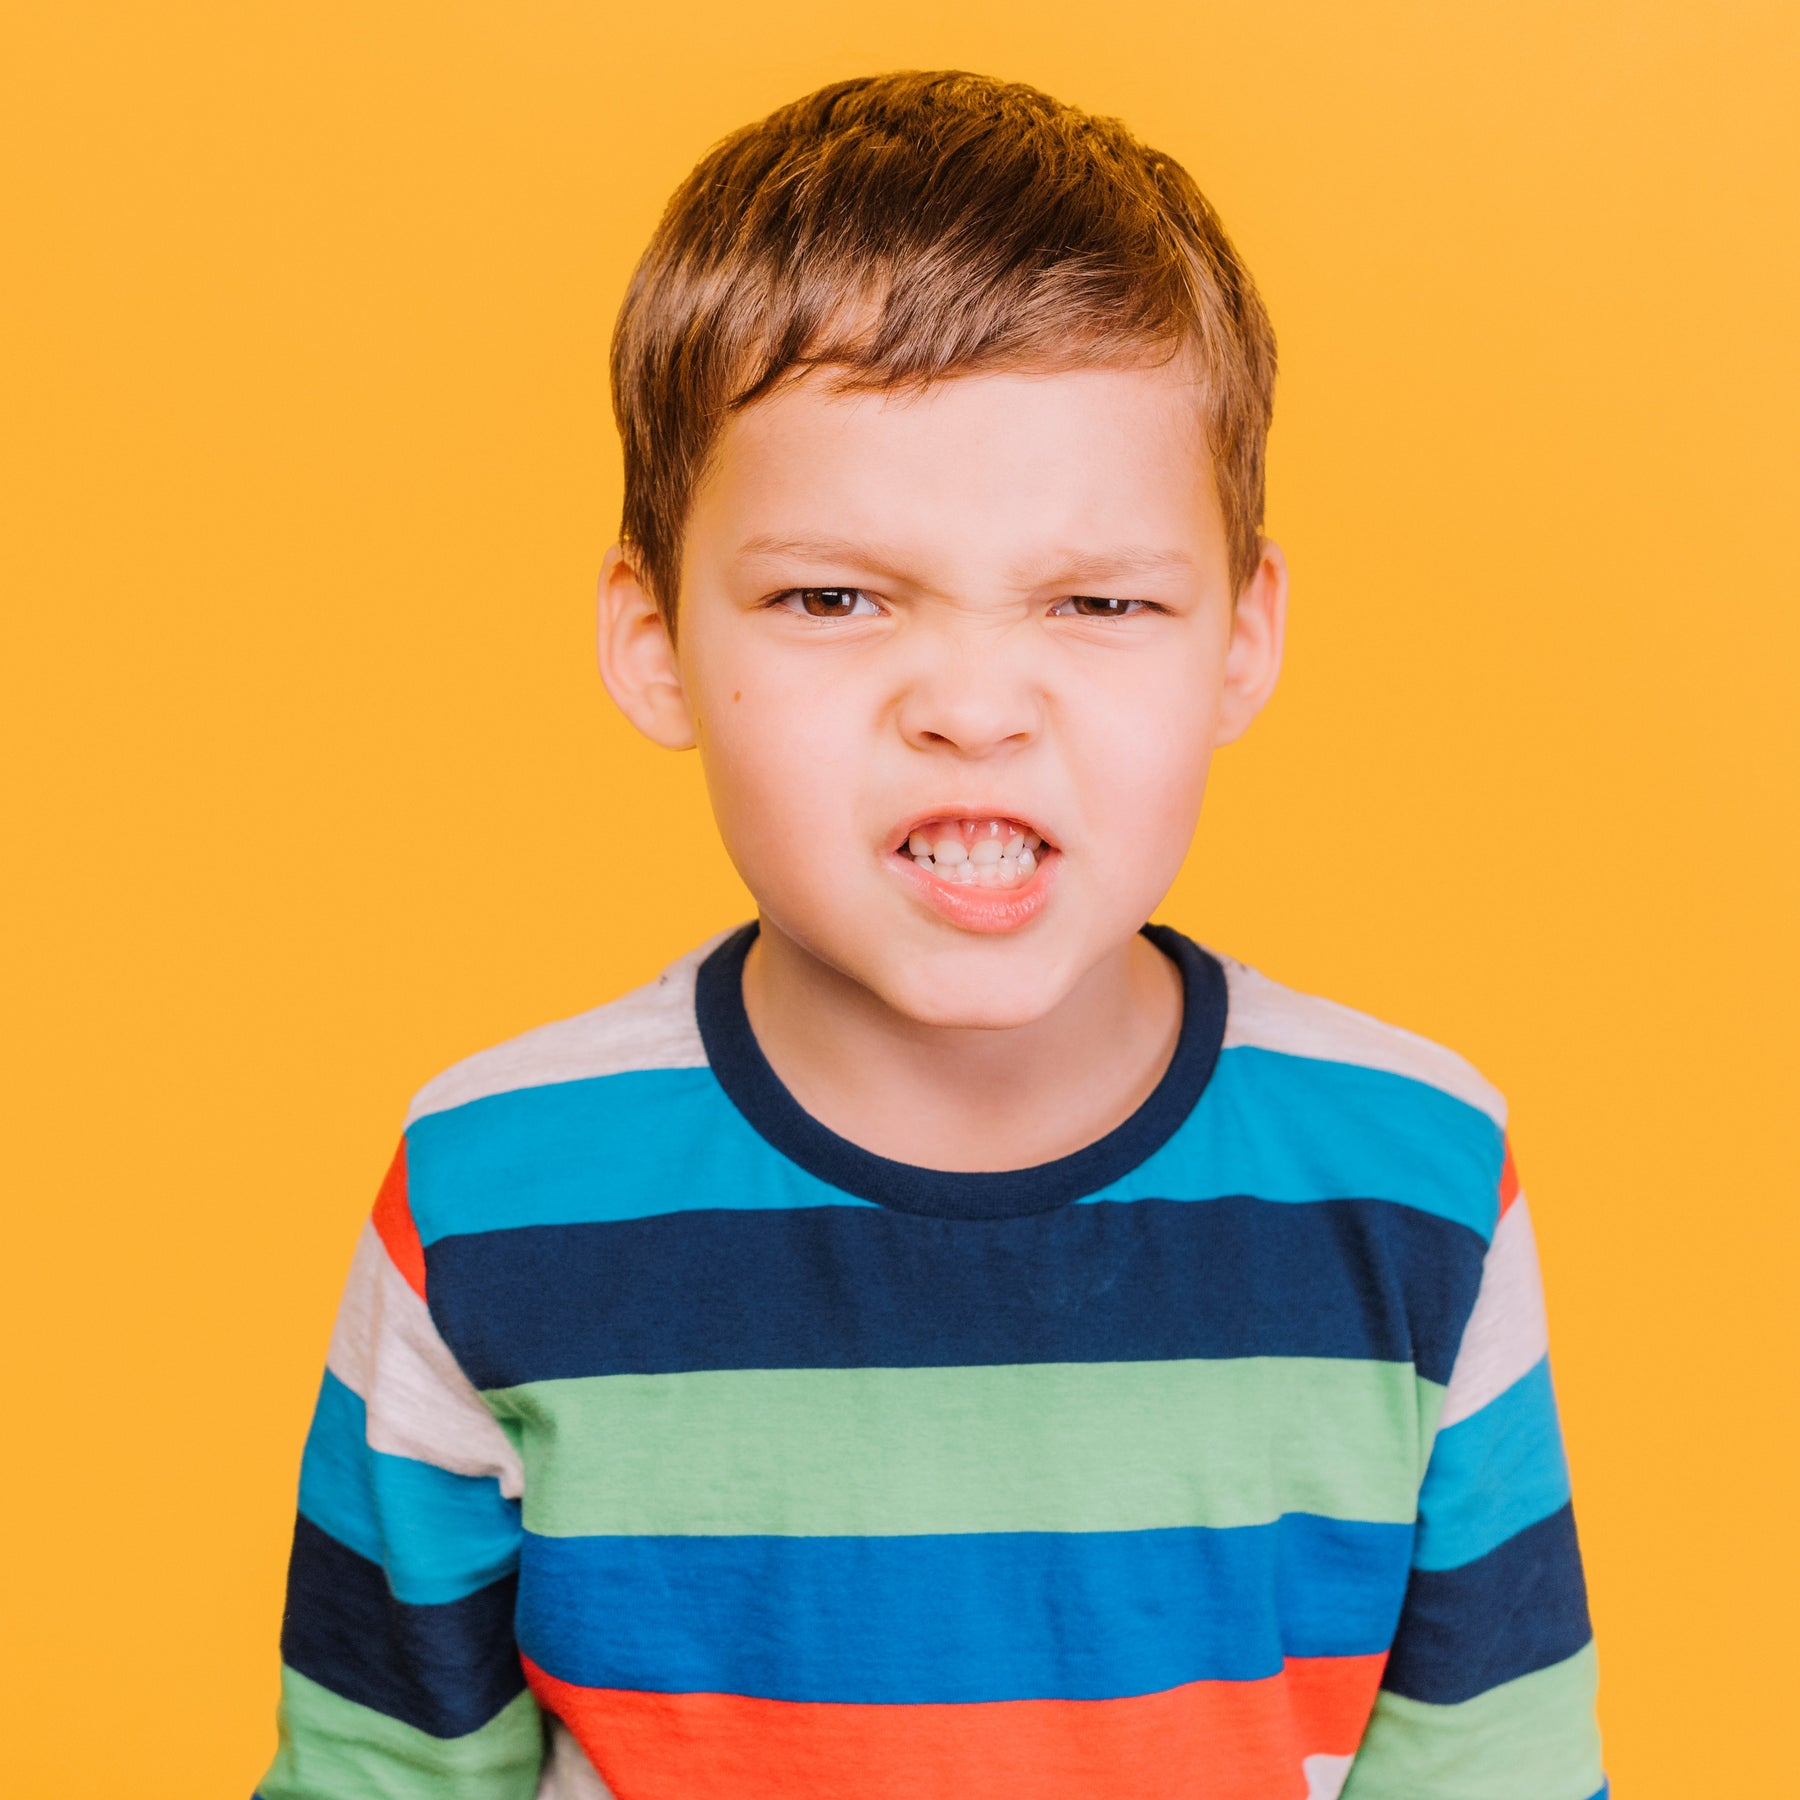 How to deal with your child's temper tantrums